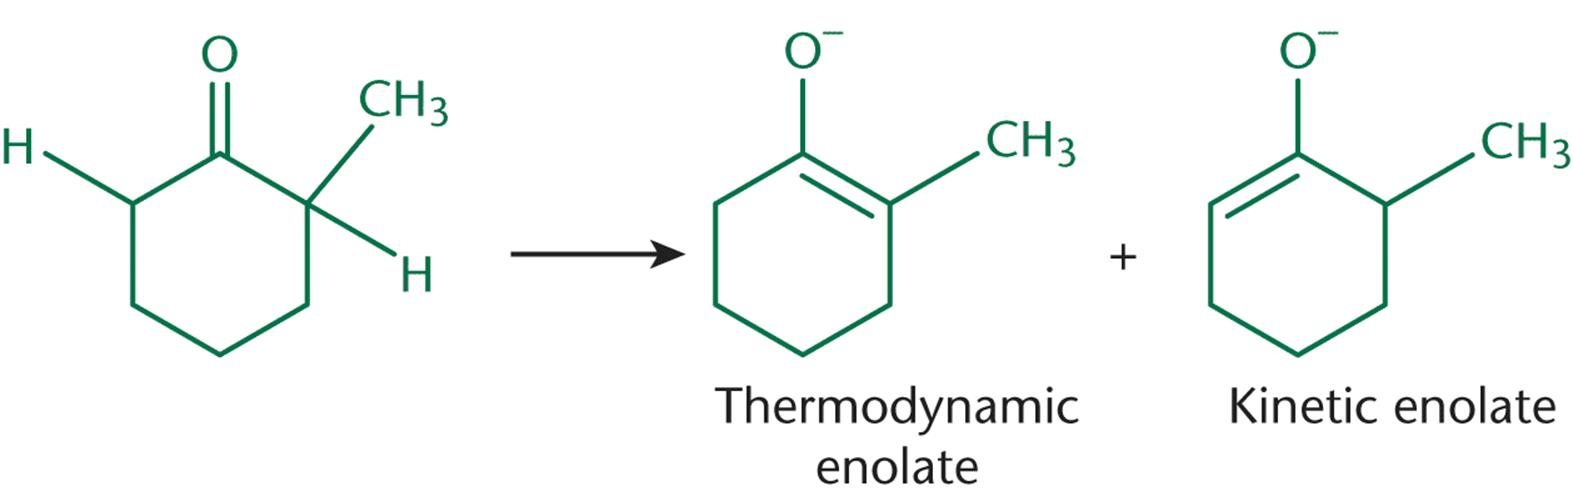 Kinetic and Thermodynamic Enolates The kinetic enolate forms more quickly,  but is less stable than the thermodynamic enolate.